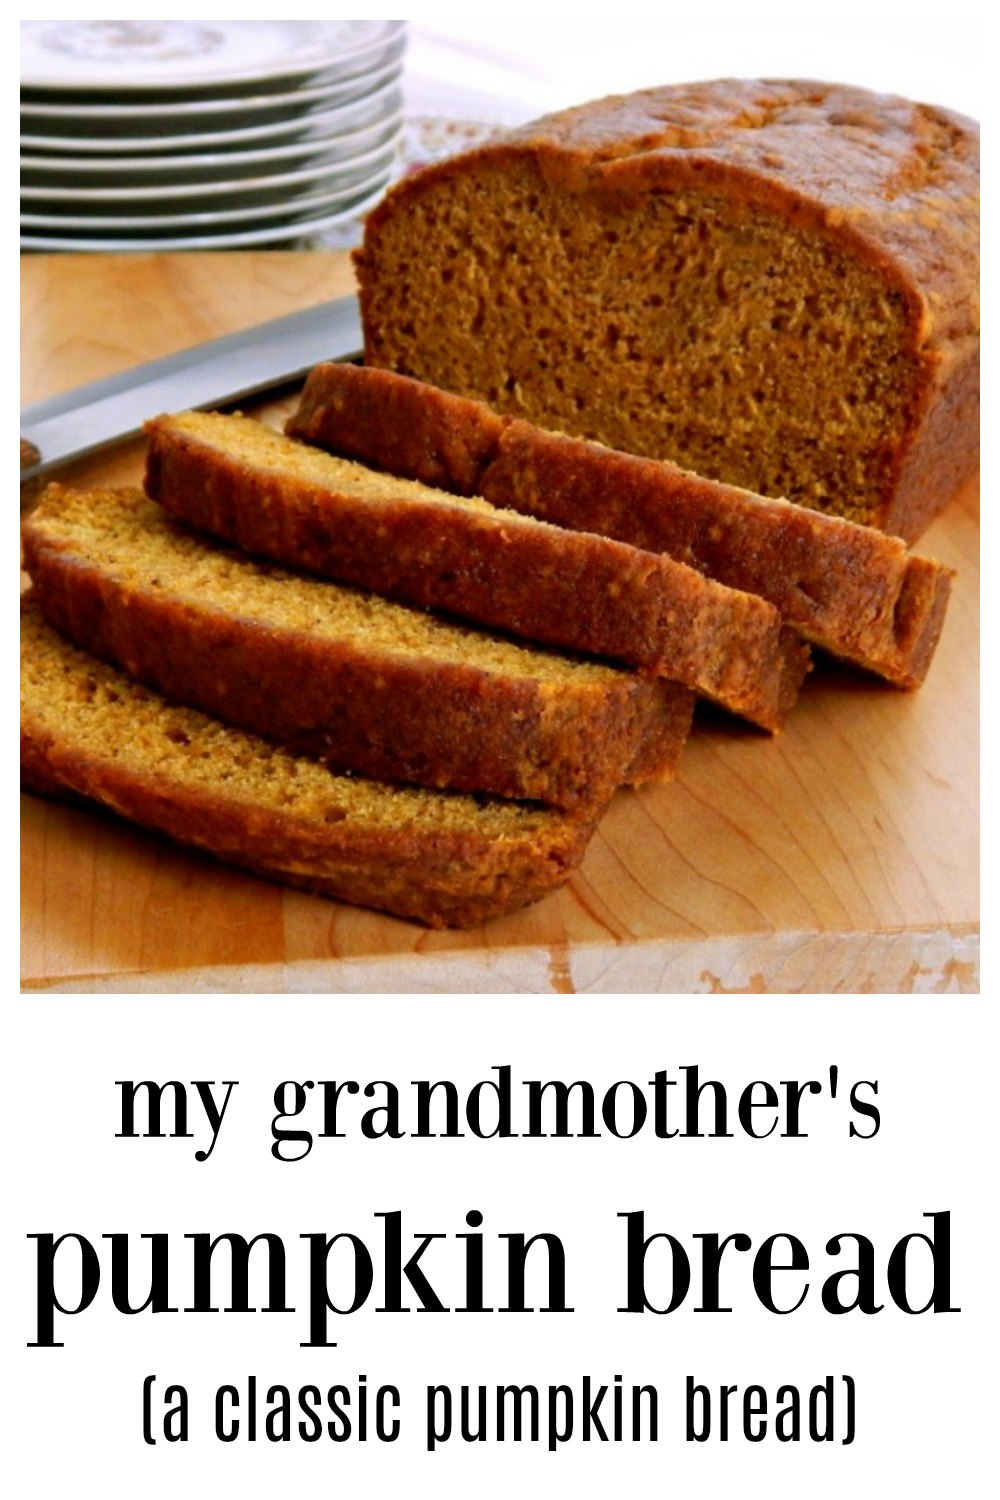 We've been making Grandmother's Pumpkin Bread for close to 70 years and it is STILL the BEST! It will make you feel sorry for all other pumpkin bread! Makes 2 loaves #PumpkinBread #ClassicPumpkinBread #GrandmothersPumpkinBread #GrandmasPumpkinBread